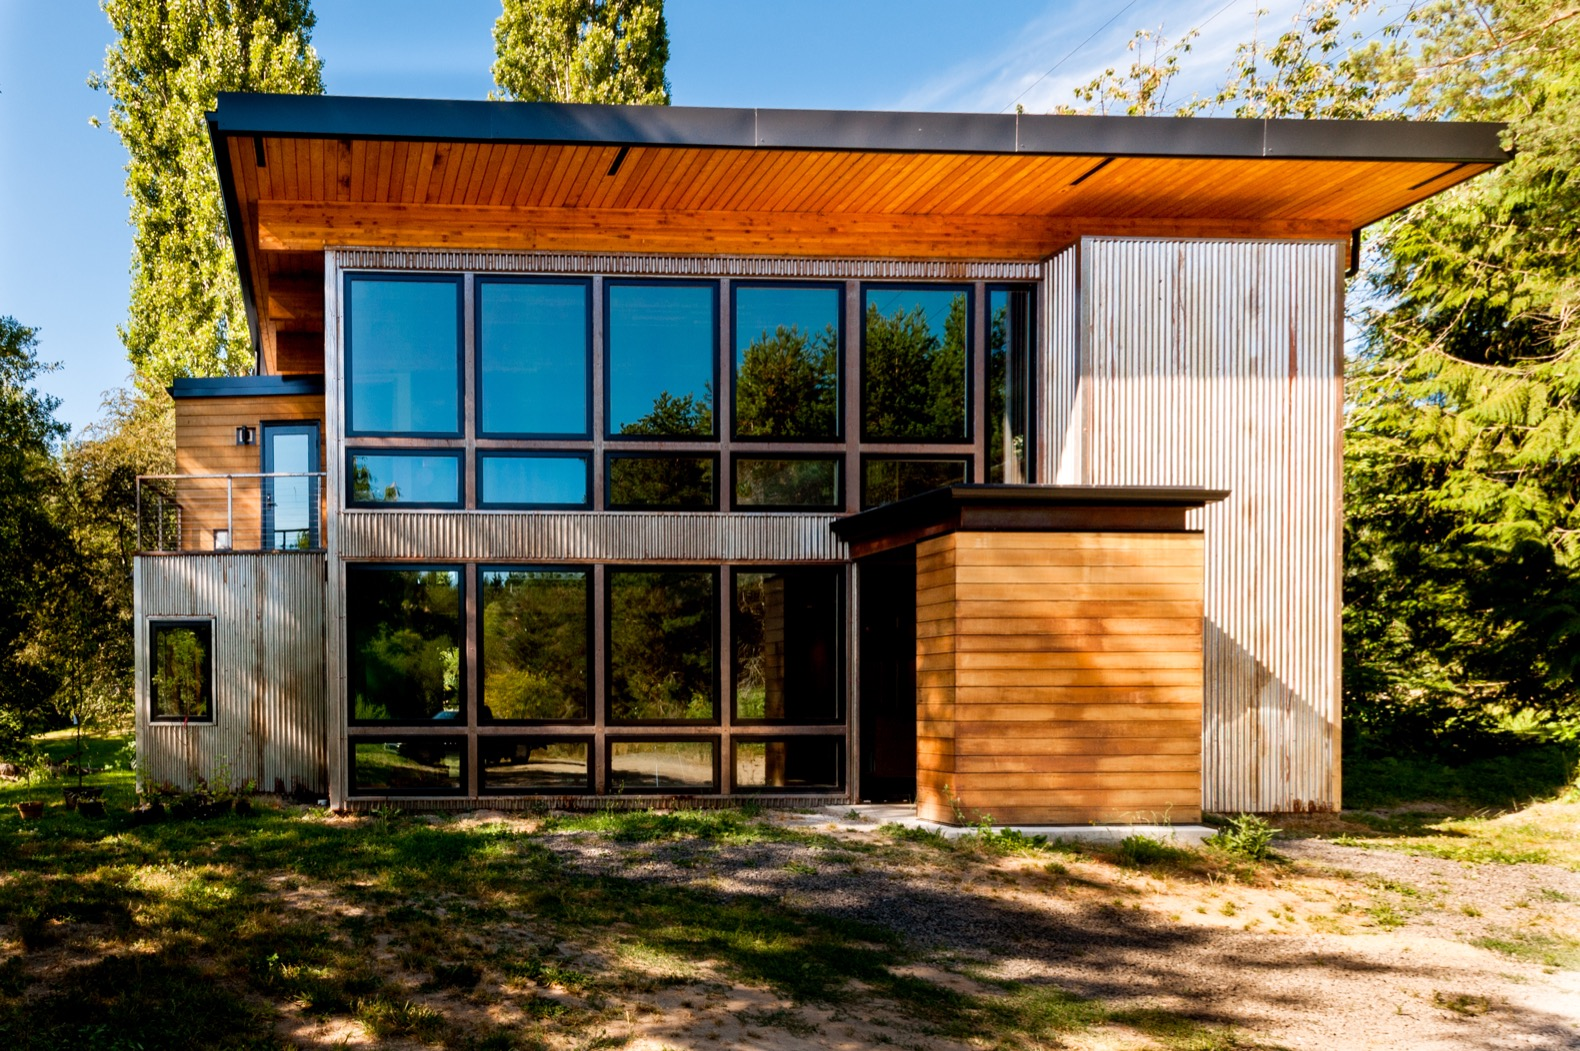 Shipping containers inspire a light-filled musician's home